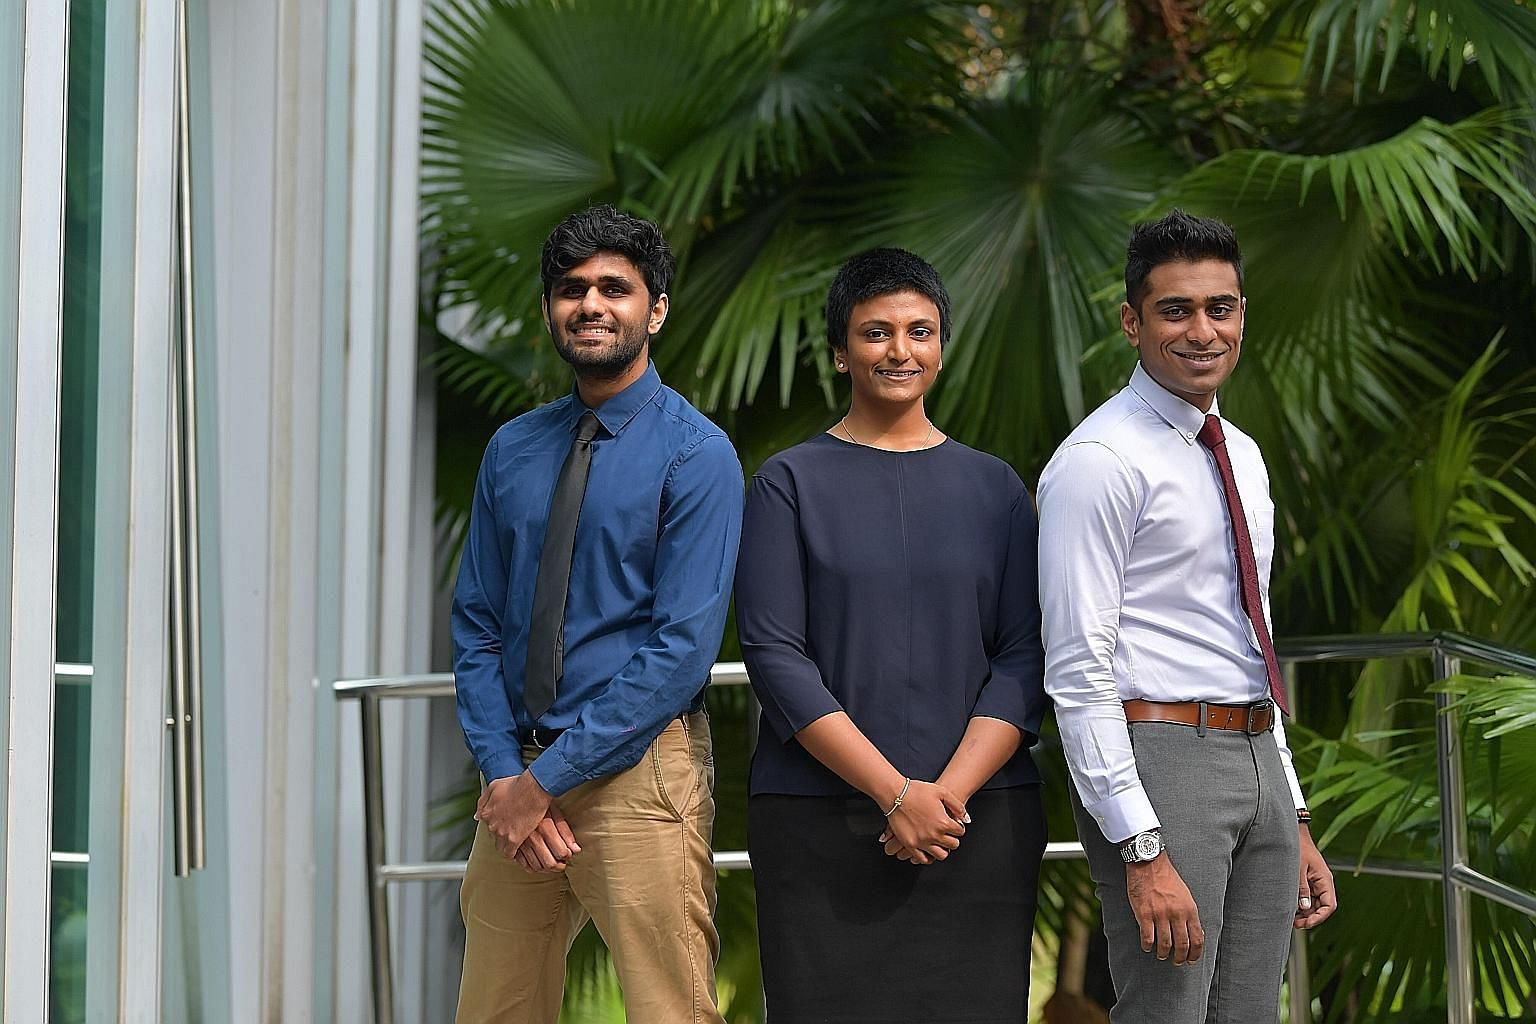 Among those receiving Sinda's Excellence Award yesterday were (from left) Mr Suraendher Kumarr, 25, Ms Angelyn Puspa-Nathan, 21, and Mr Mohamed Nizar Bathushaa Mohamed Hanifah, 24. ST PHOTO: NG SOR LUAN